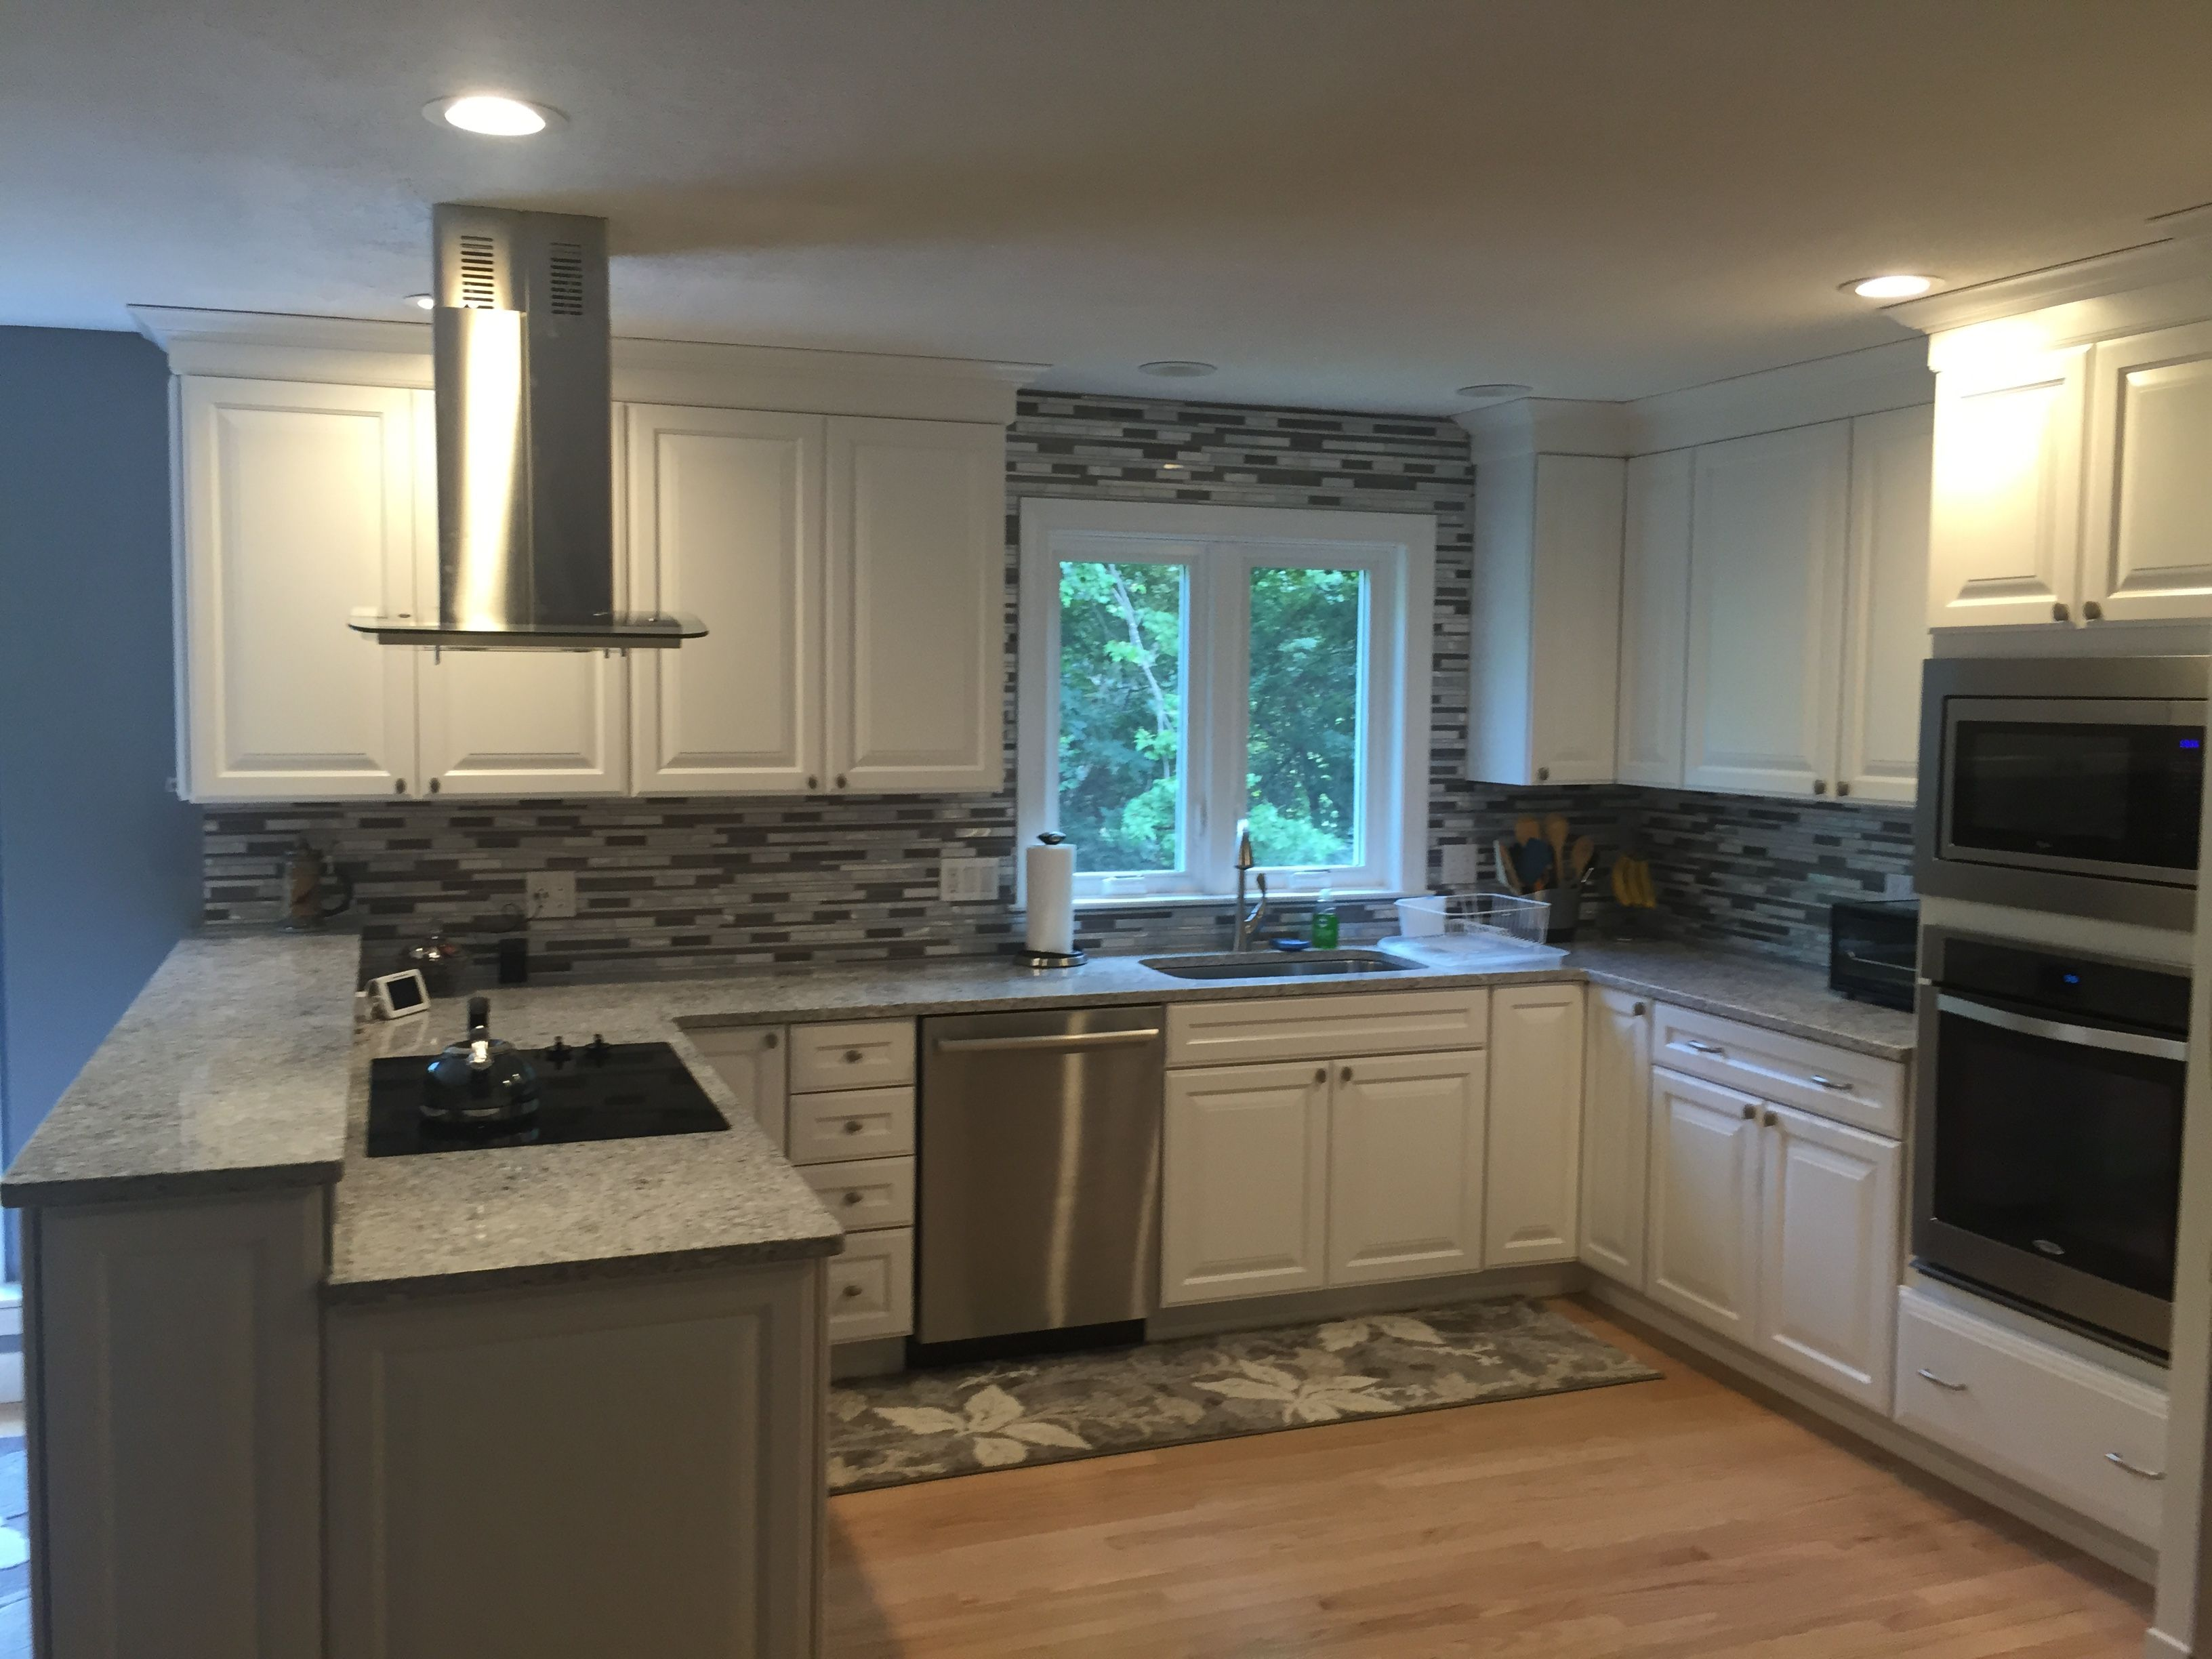 Lowe S Kitchen Remodel Real Kitchen Kitchen Cabinet Remodel